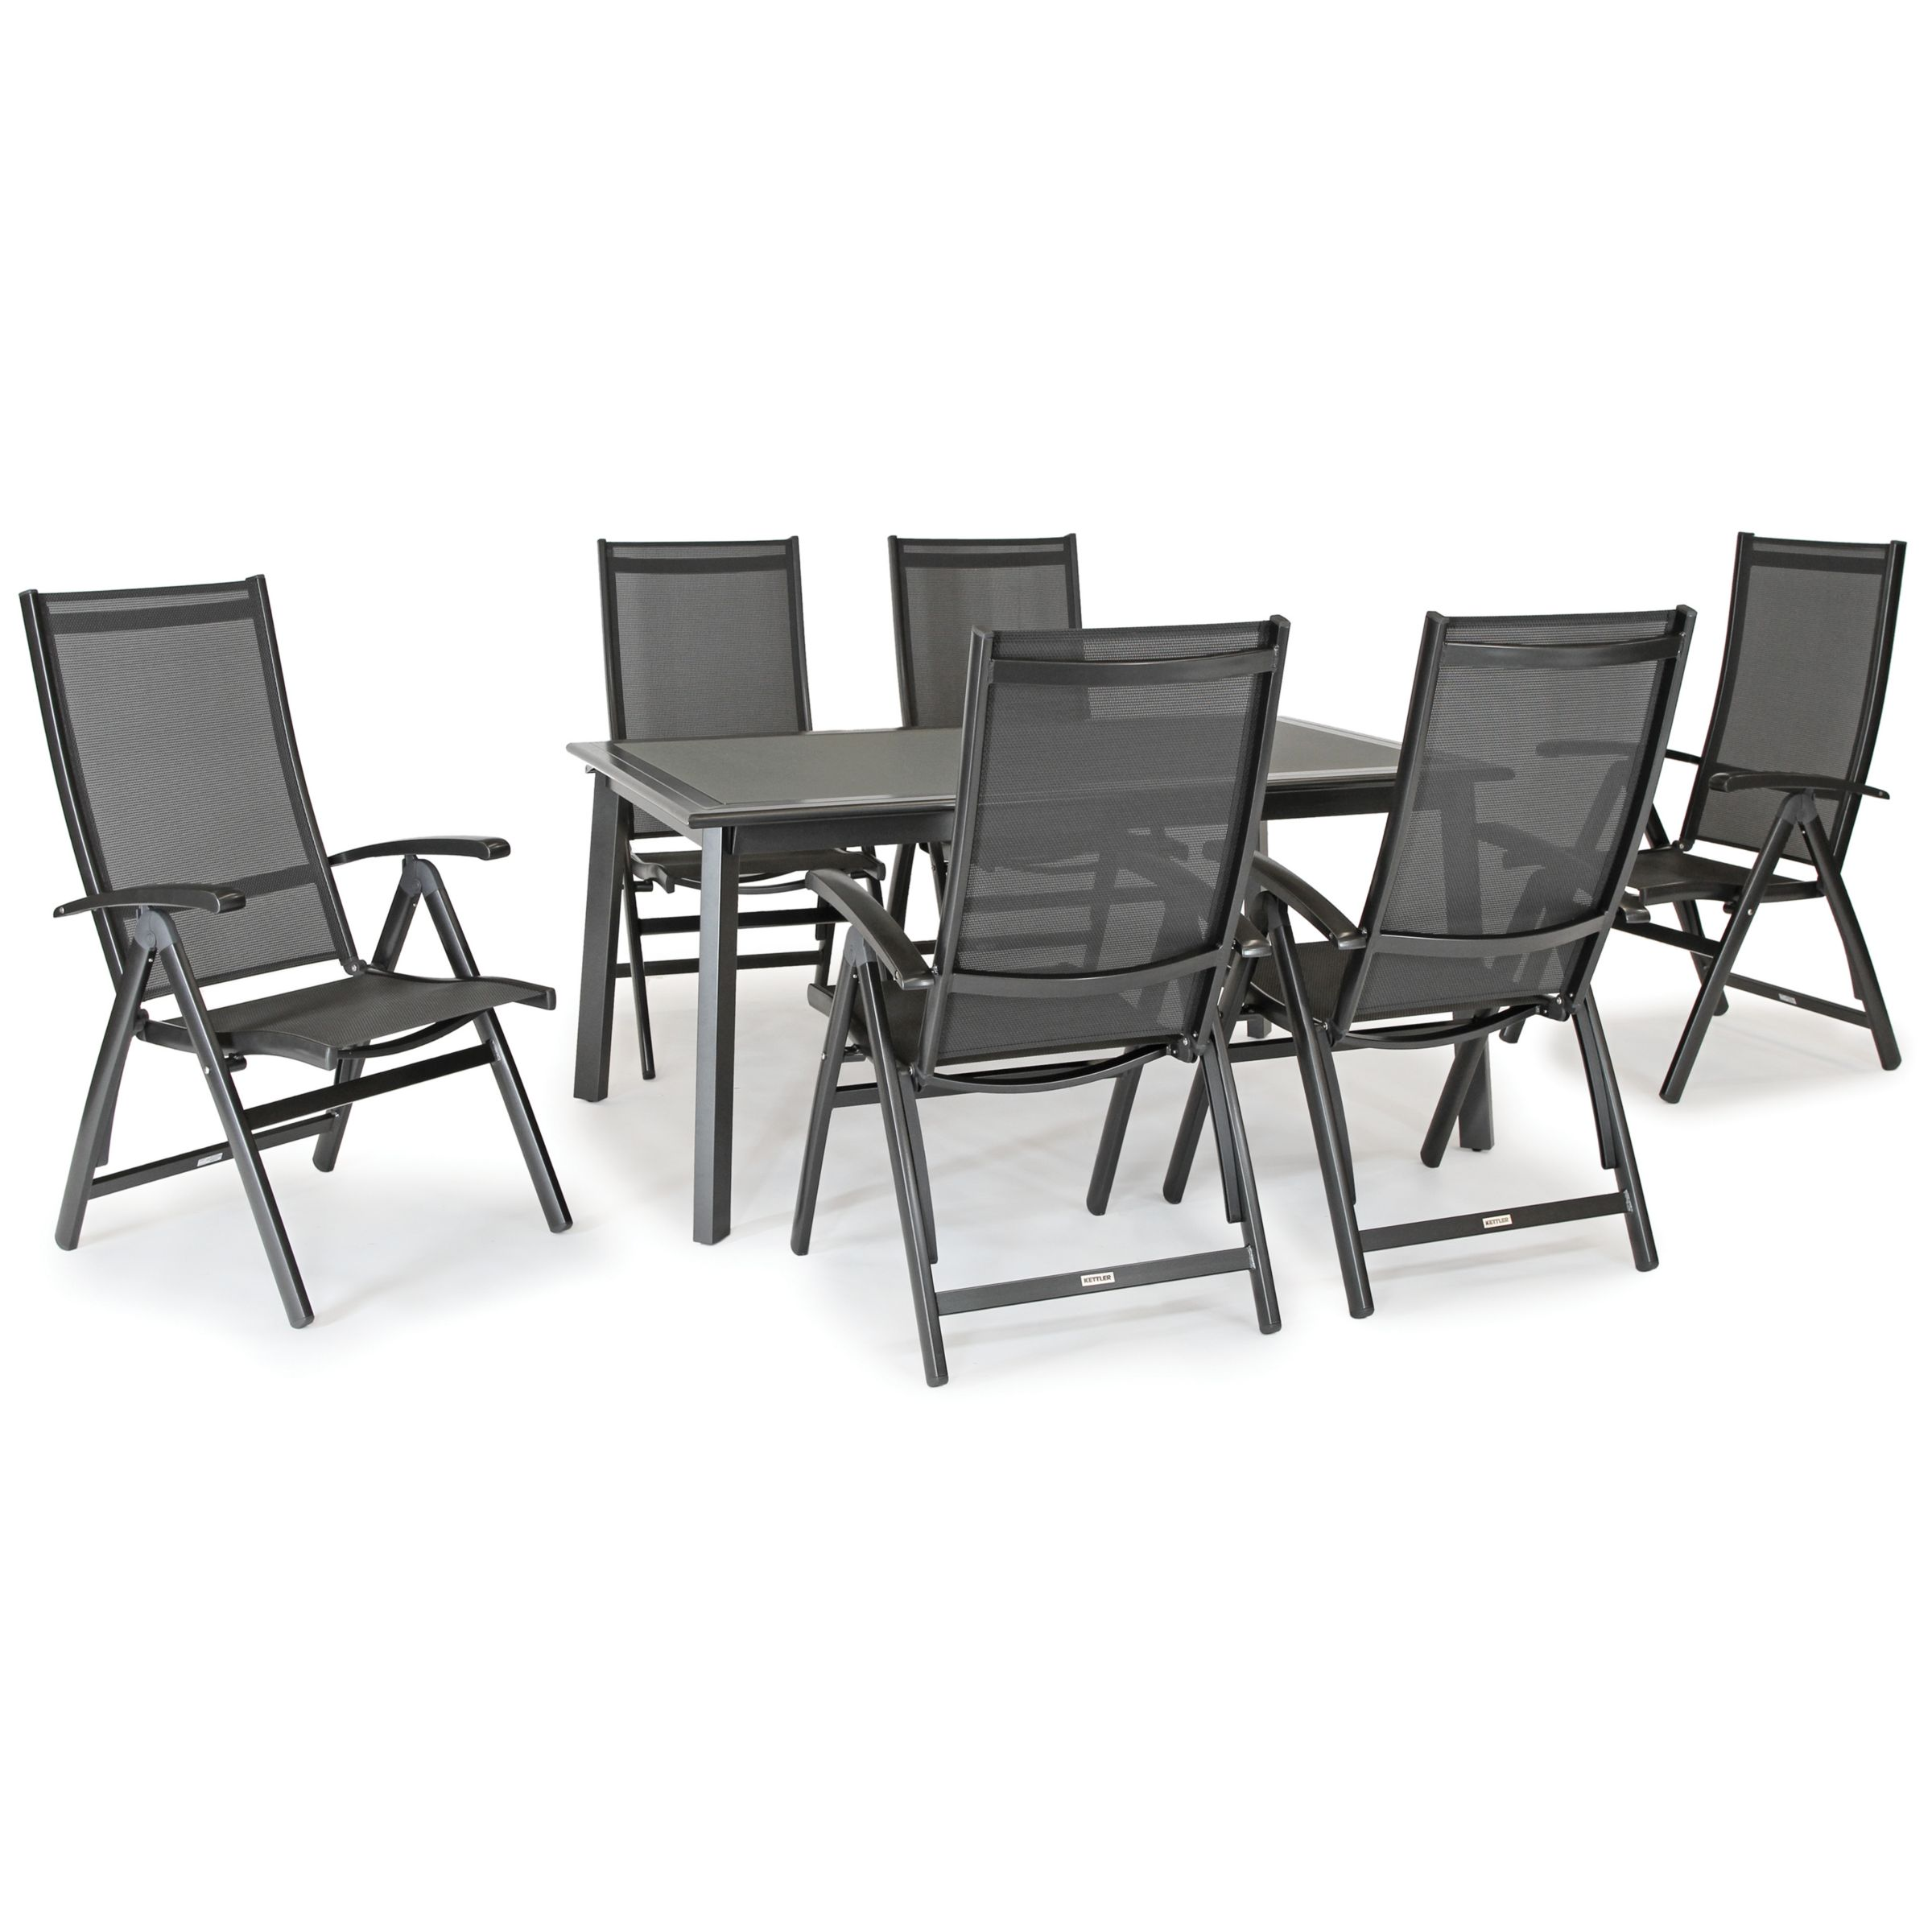 KETTLER Surf 9 Seater Garden Dining Table and Reclining Chairs Set